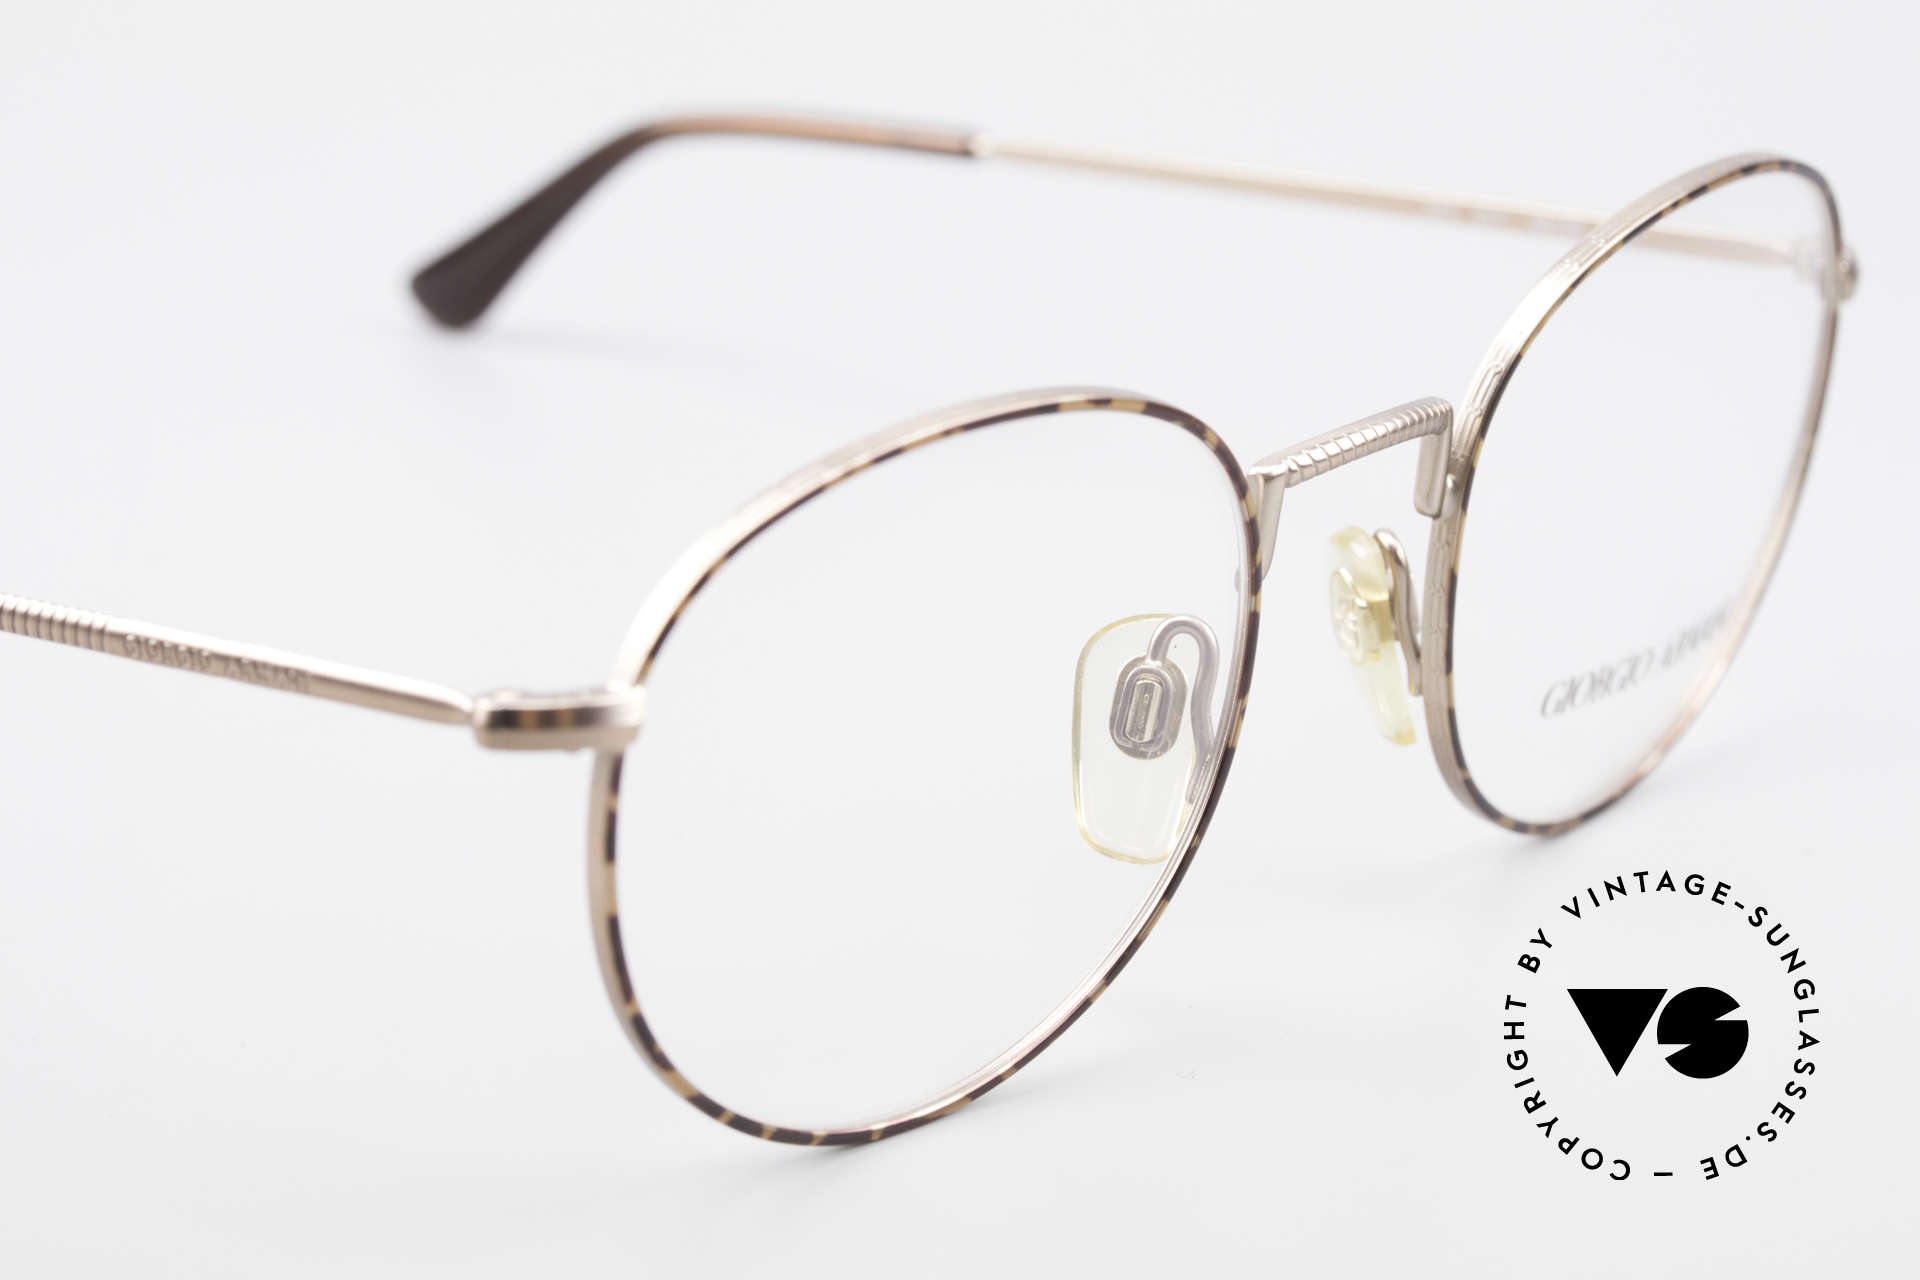 Giorgio Armani 231 80's Panto Frame No Retro, NO RETRO EYEWEAR, but a 30 years old ORIGINAL!, Made for Men